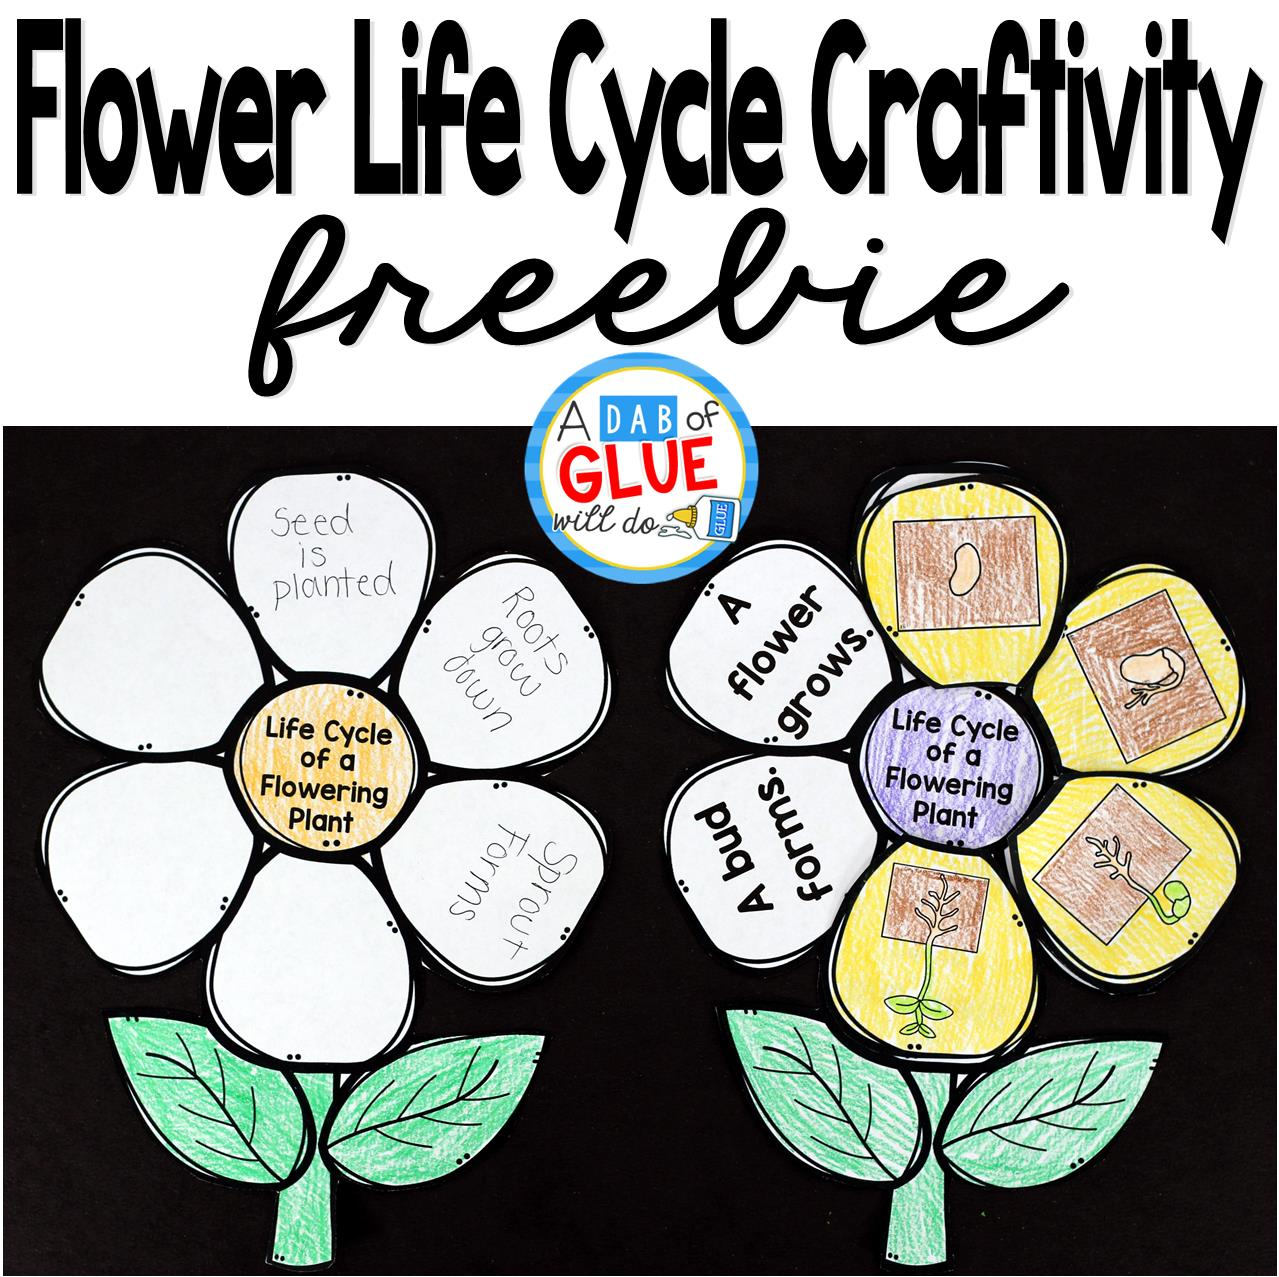 File name: Flowering Plant Life Cycle Craftivity is the perfect addition to your science lesson plans this spring. This free printable is perfect for preschool, kindergarten, first grade, and second grade students.